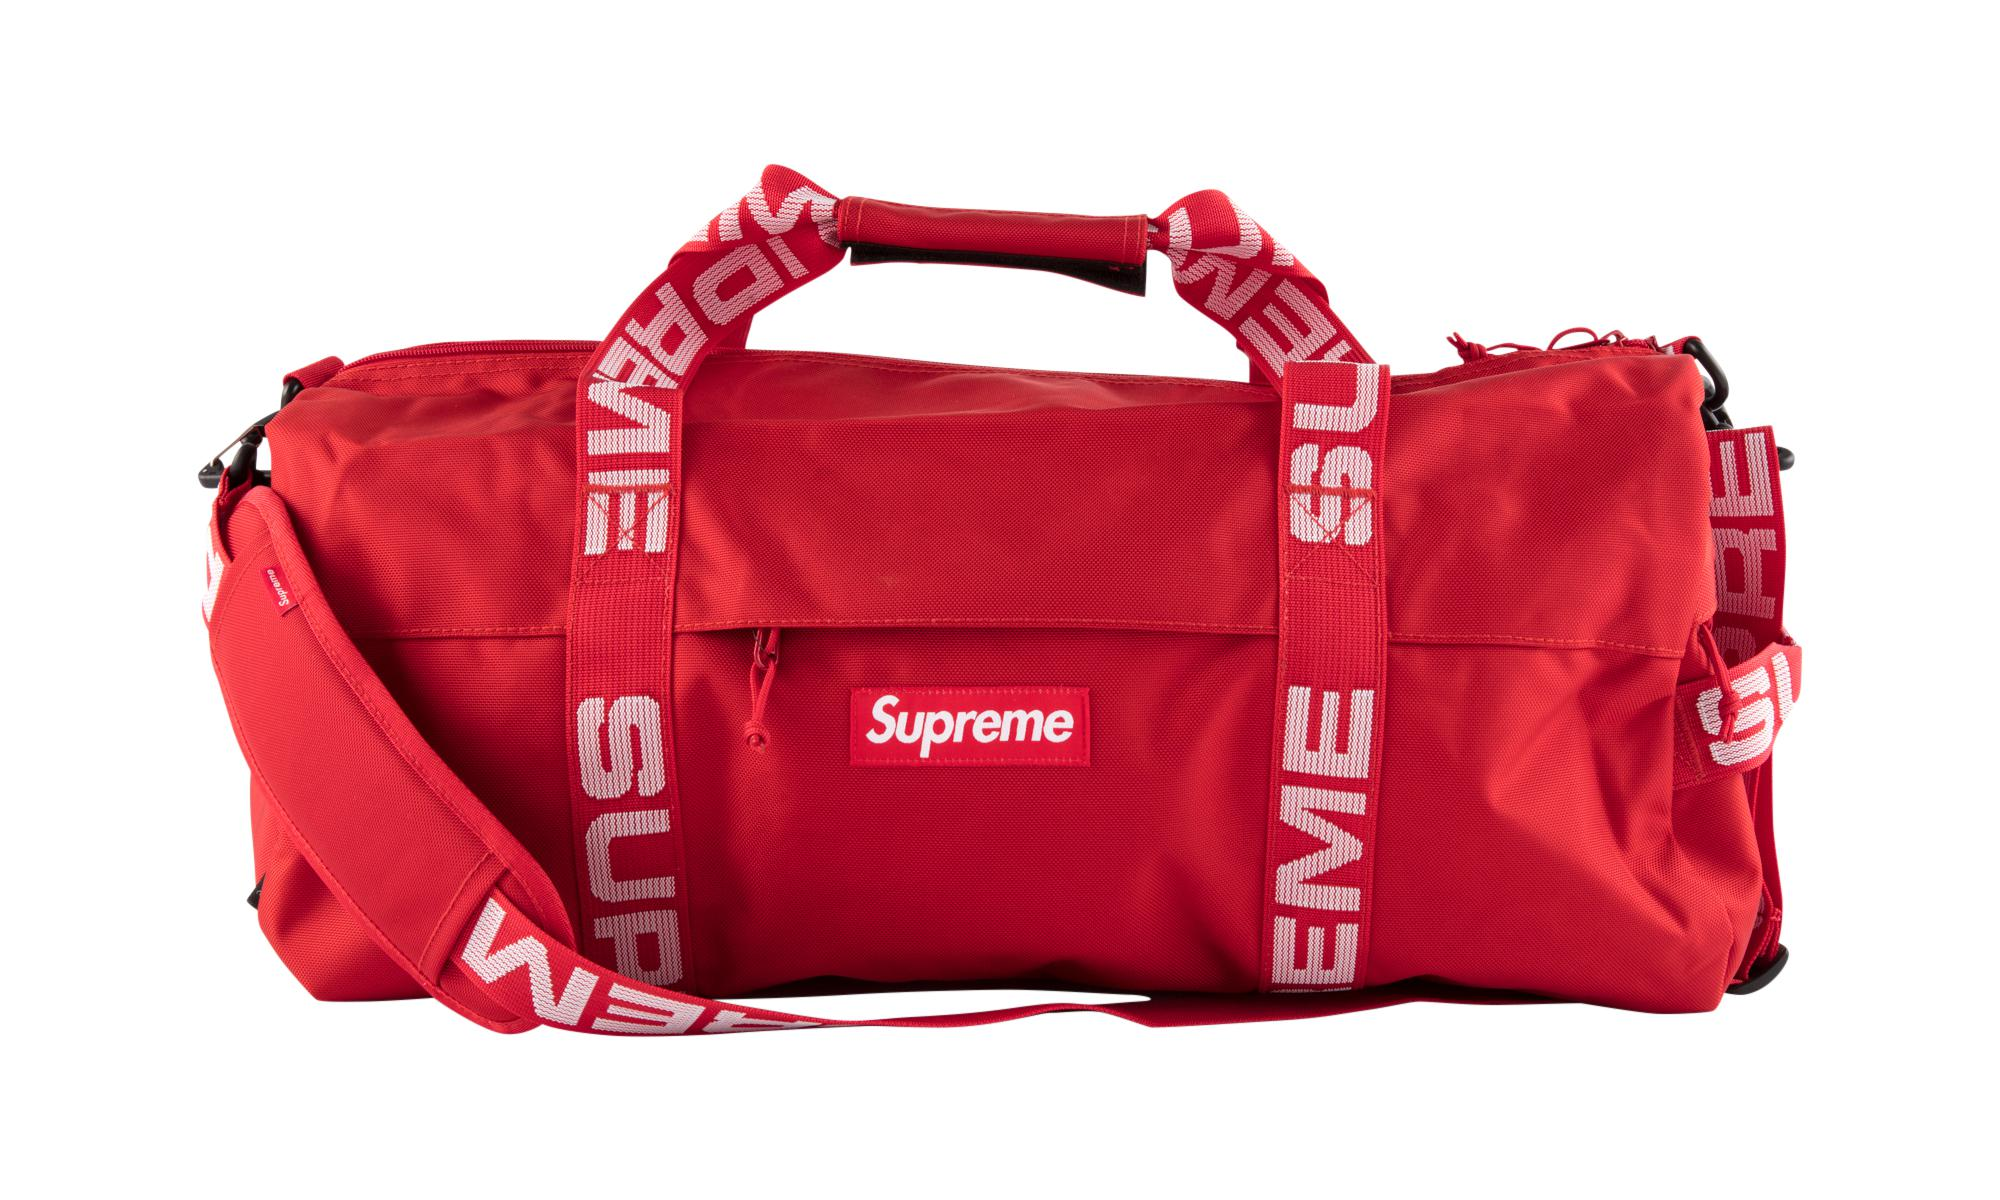 a0e6447cd472 Supreme - Red Large Duffle Bag for Men - Lyst. View fullscreen